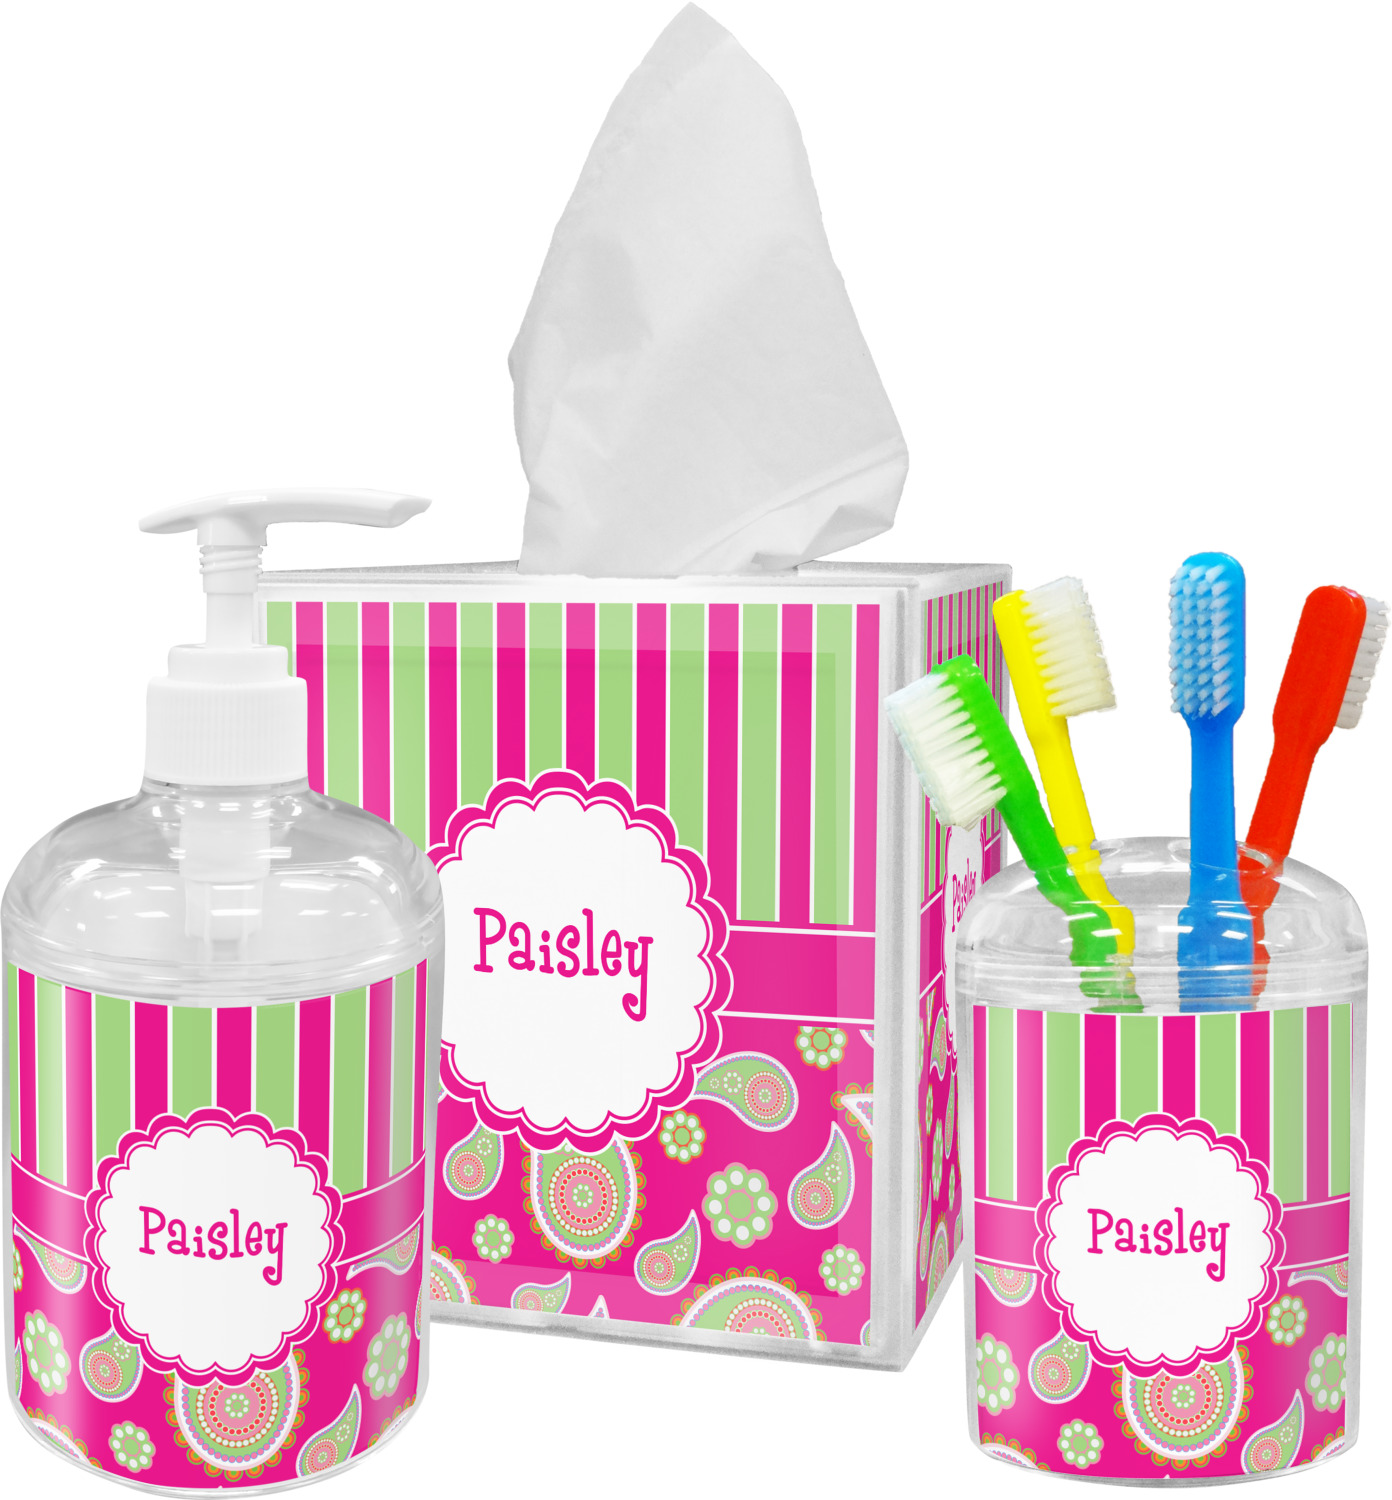 exciting red bathroom accessories sets | Pink & Green Paisley and Stripes Bathroom Accessories Set ...